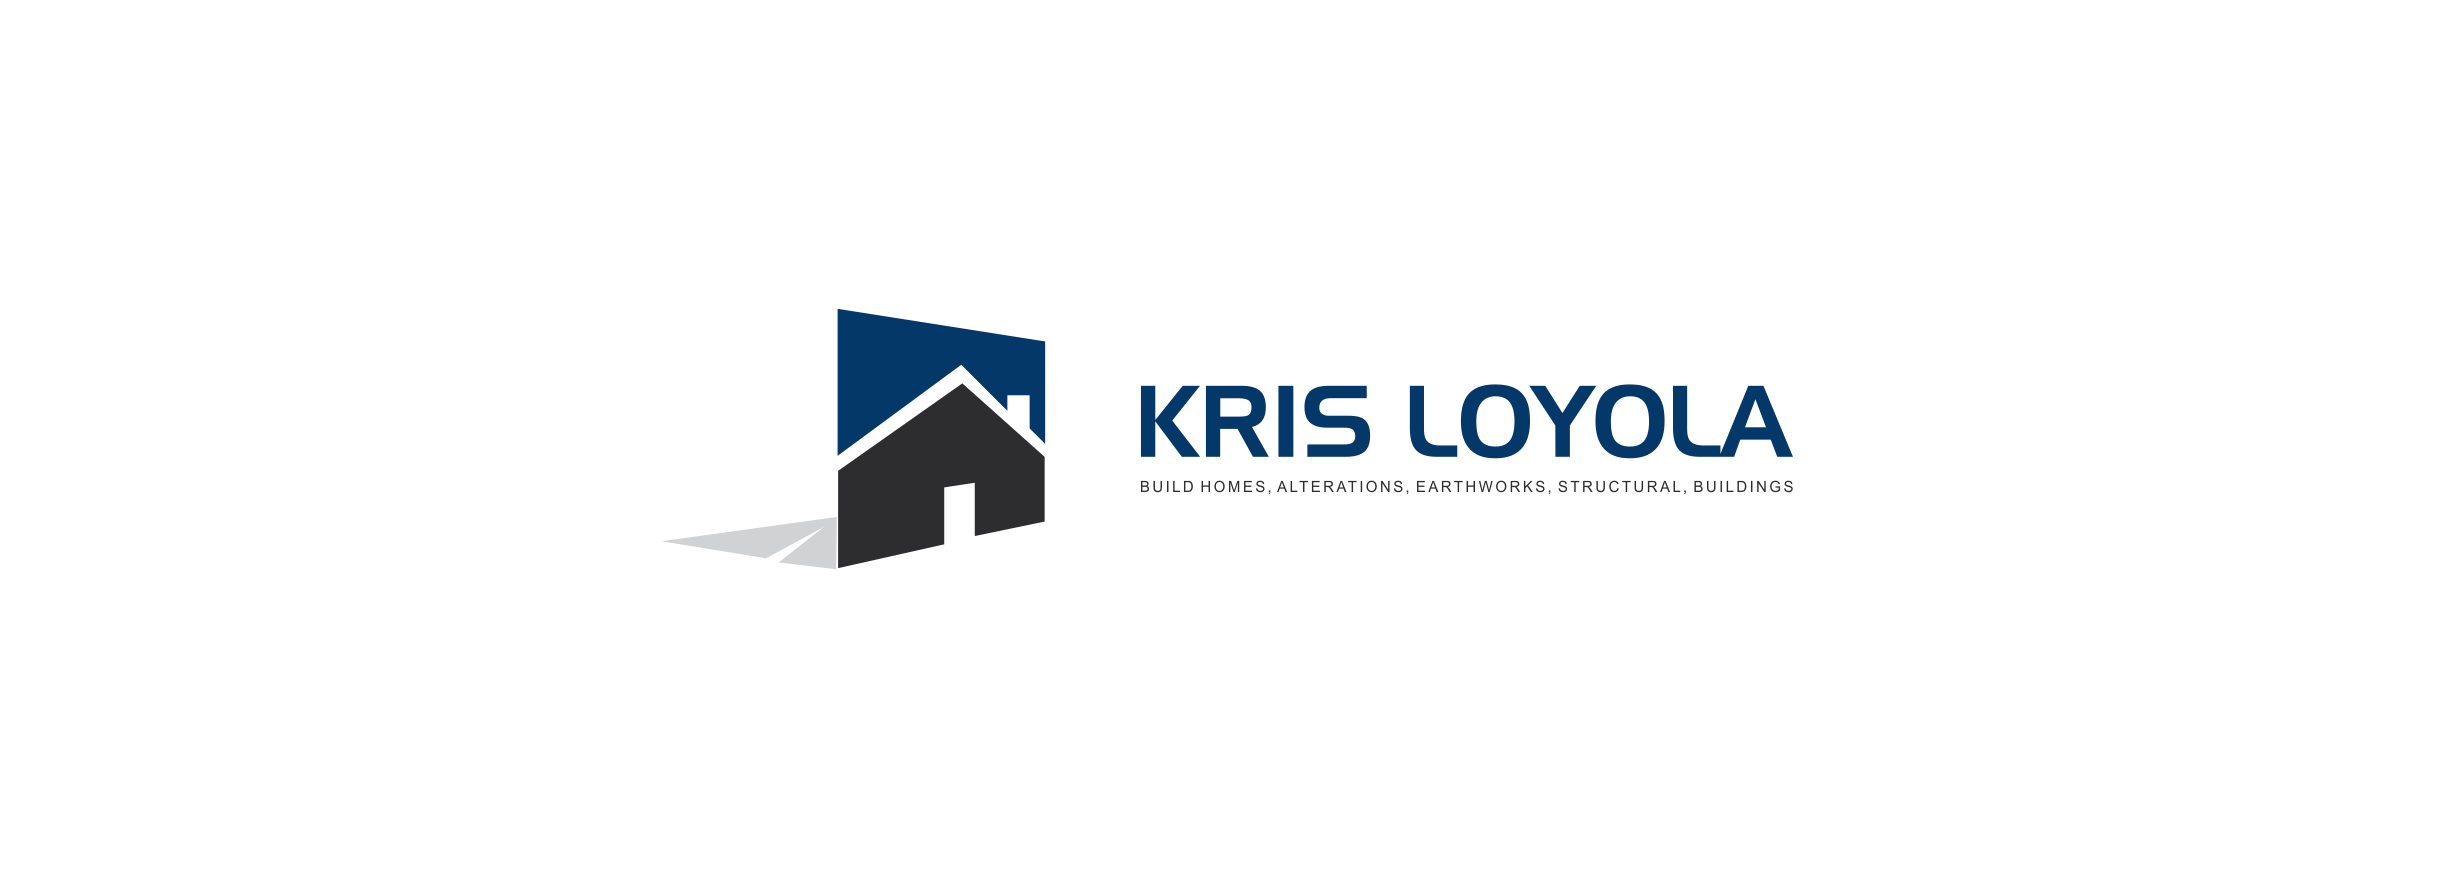 Logo Design by Muhammad Aslam - Entry No. 5 in the Logo Design Contest Kris Loyola Logo Design.